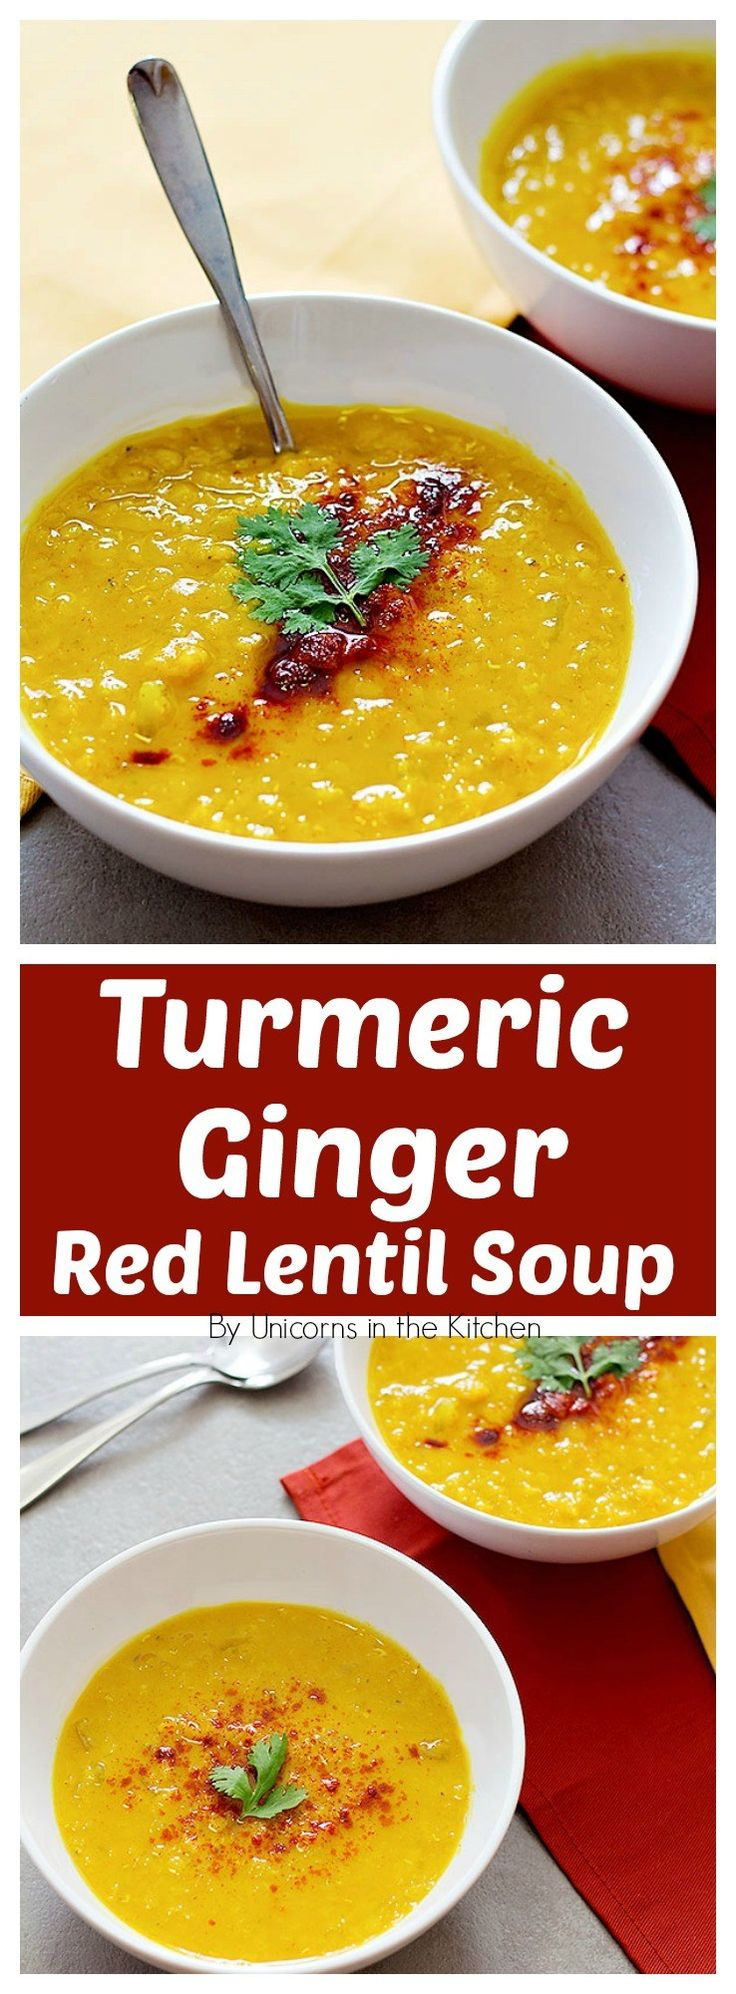 This Turmeric Ginger Red Lentil Soup will warm you up on cool fall days. The…